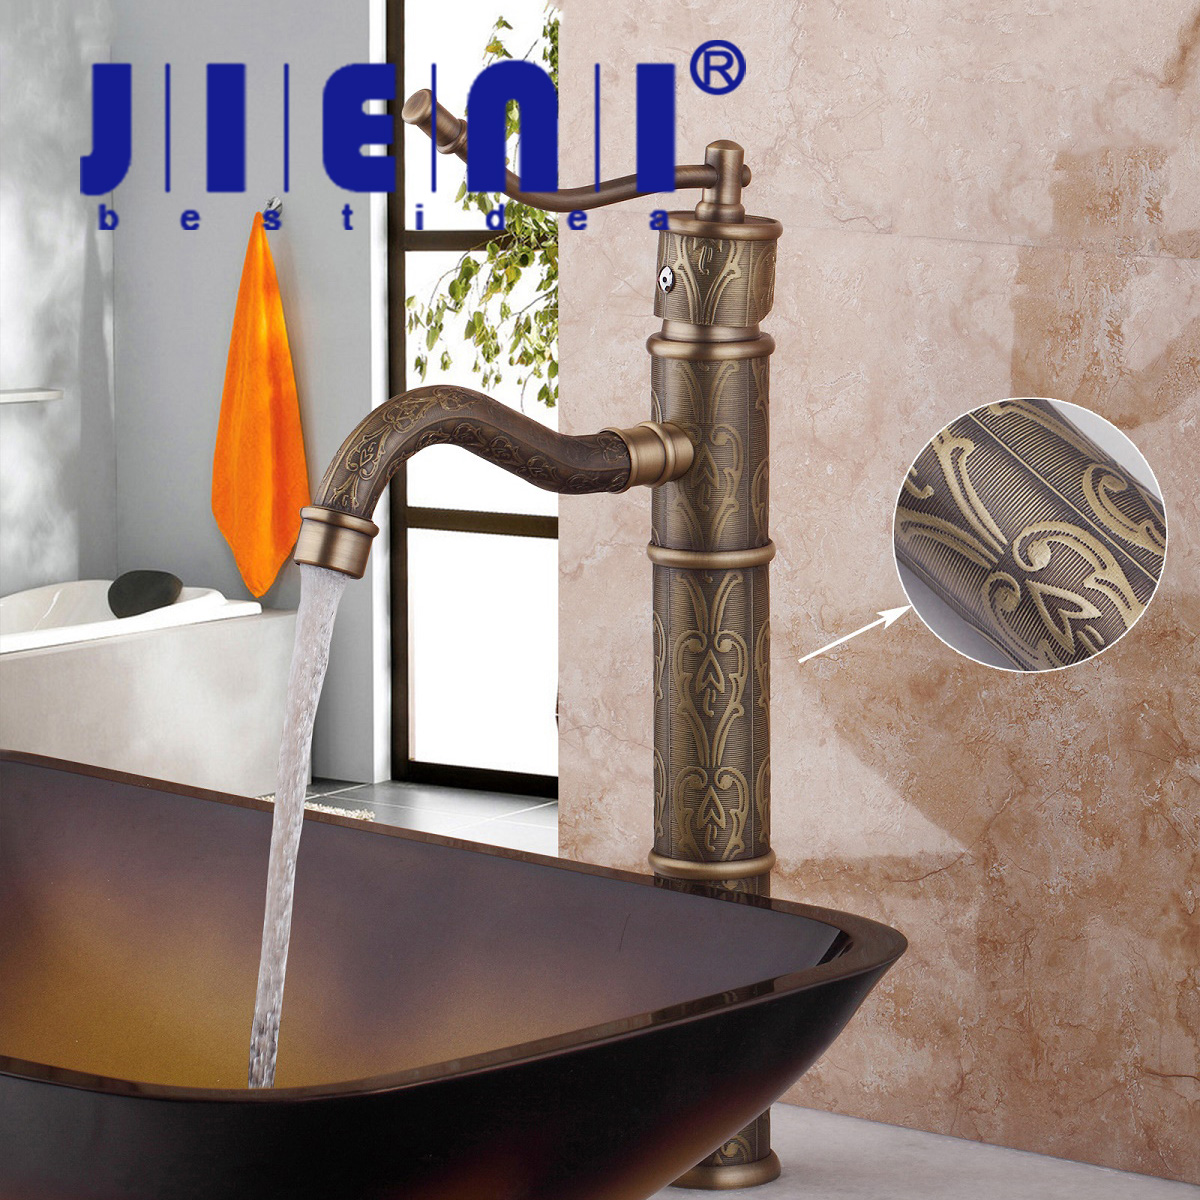 7 Faucet Finishes For Fabulous Bathrooms: JIENI DE Antique Brass Finish Deck Mounted Tap Bathroom